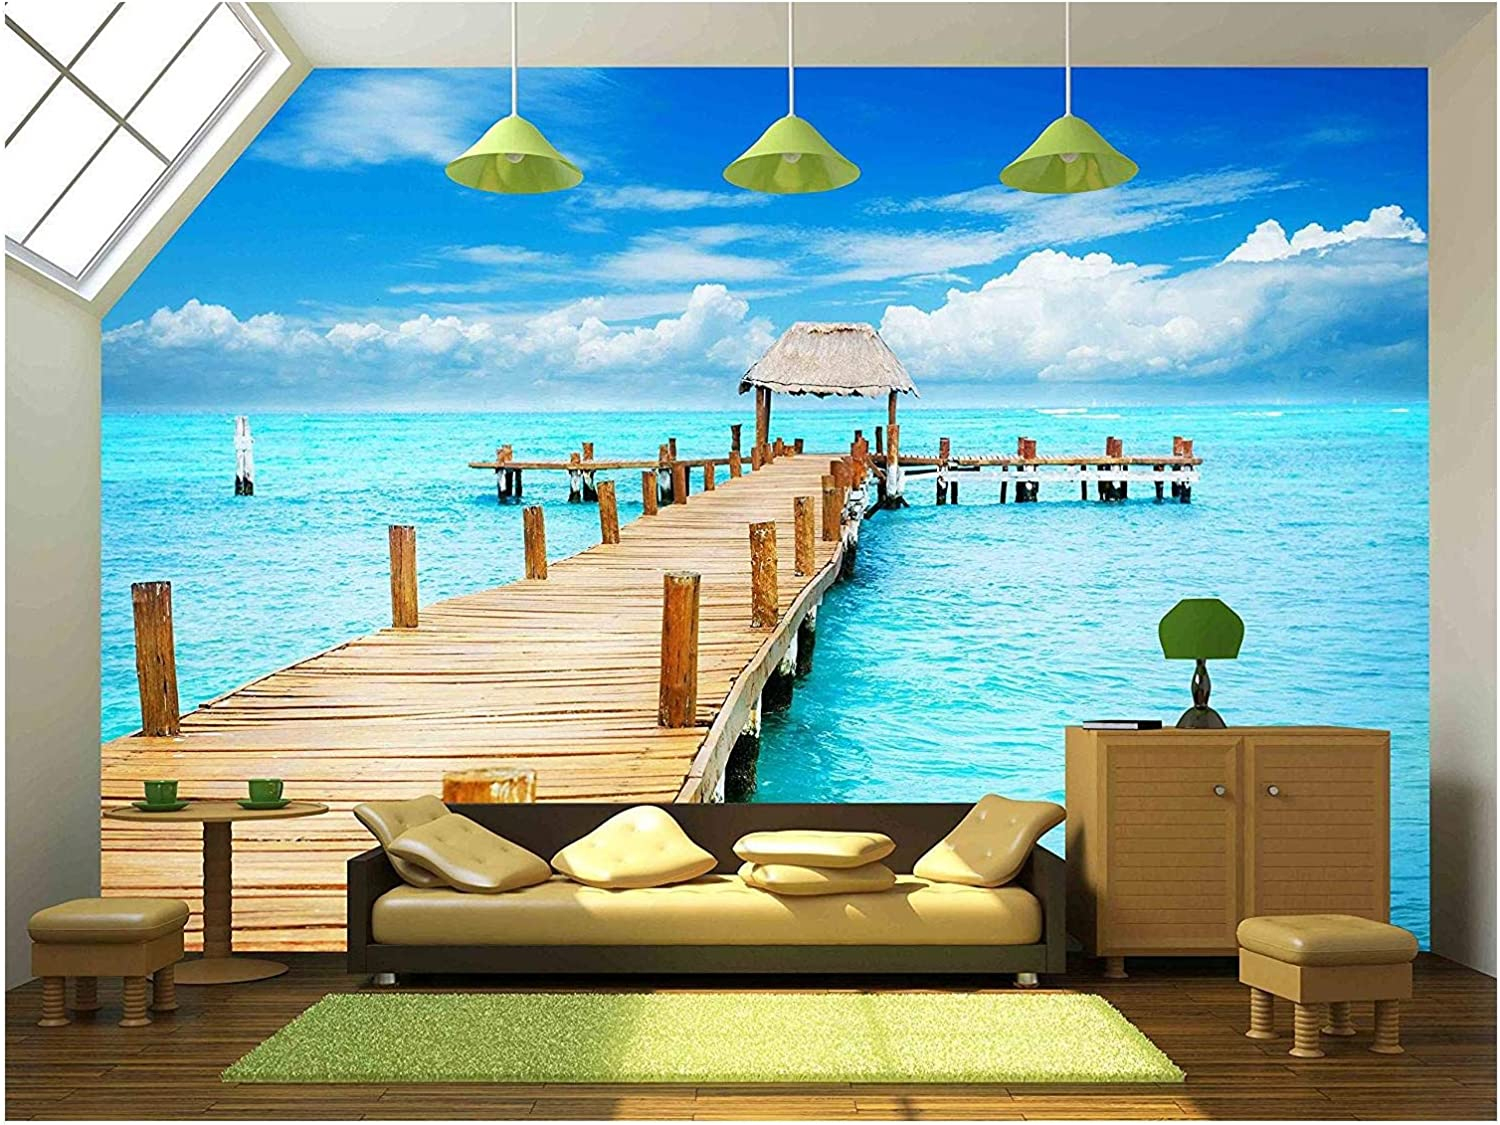 Wall26 Vacation In Tropic Paradise Jetty On Isla Mujeres Mexico Removable Wall Mural Self Adhesive Large Wallpaper 66x96 Inches Amazon Com